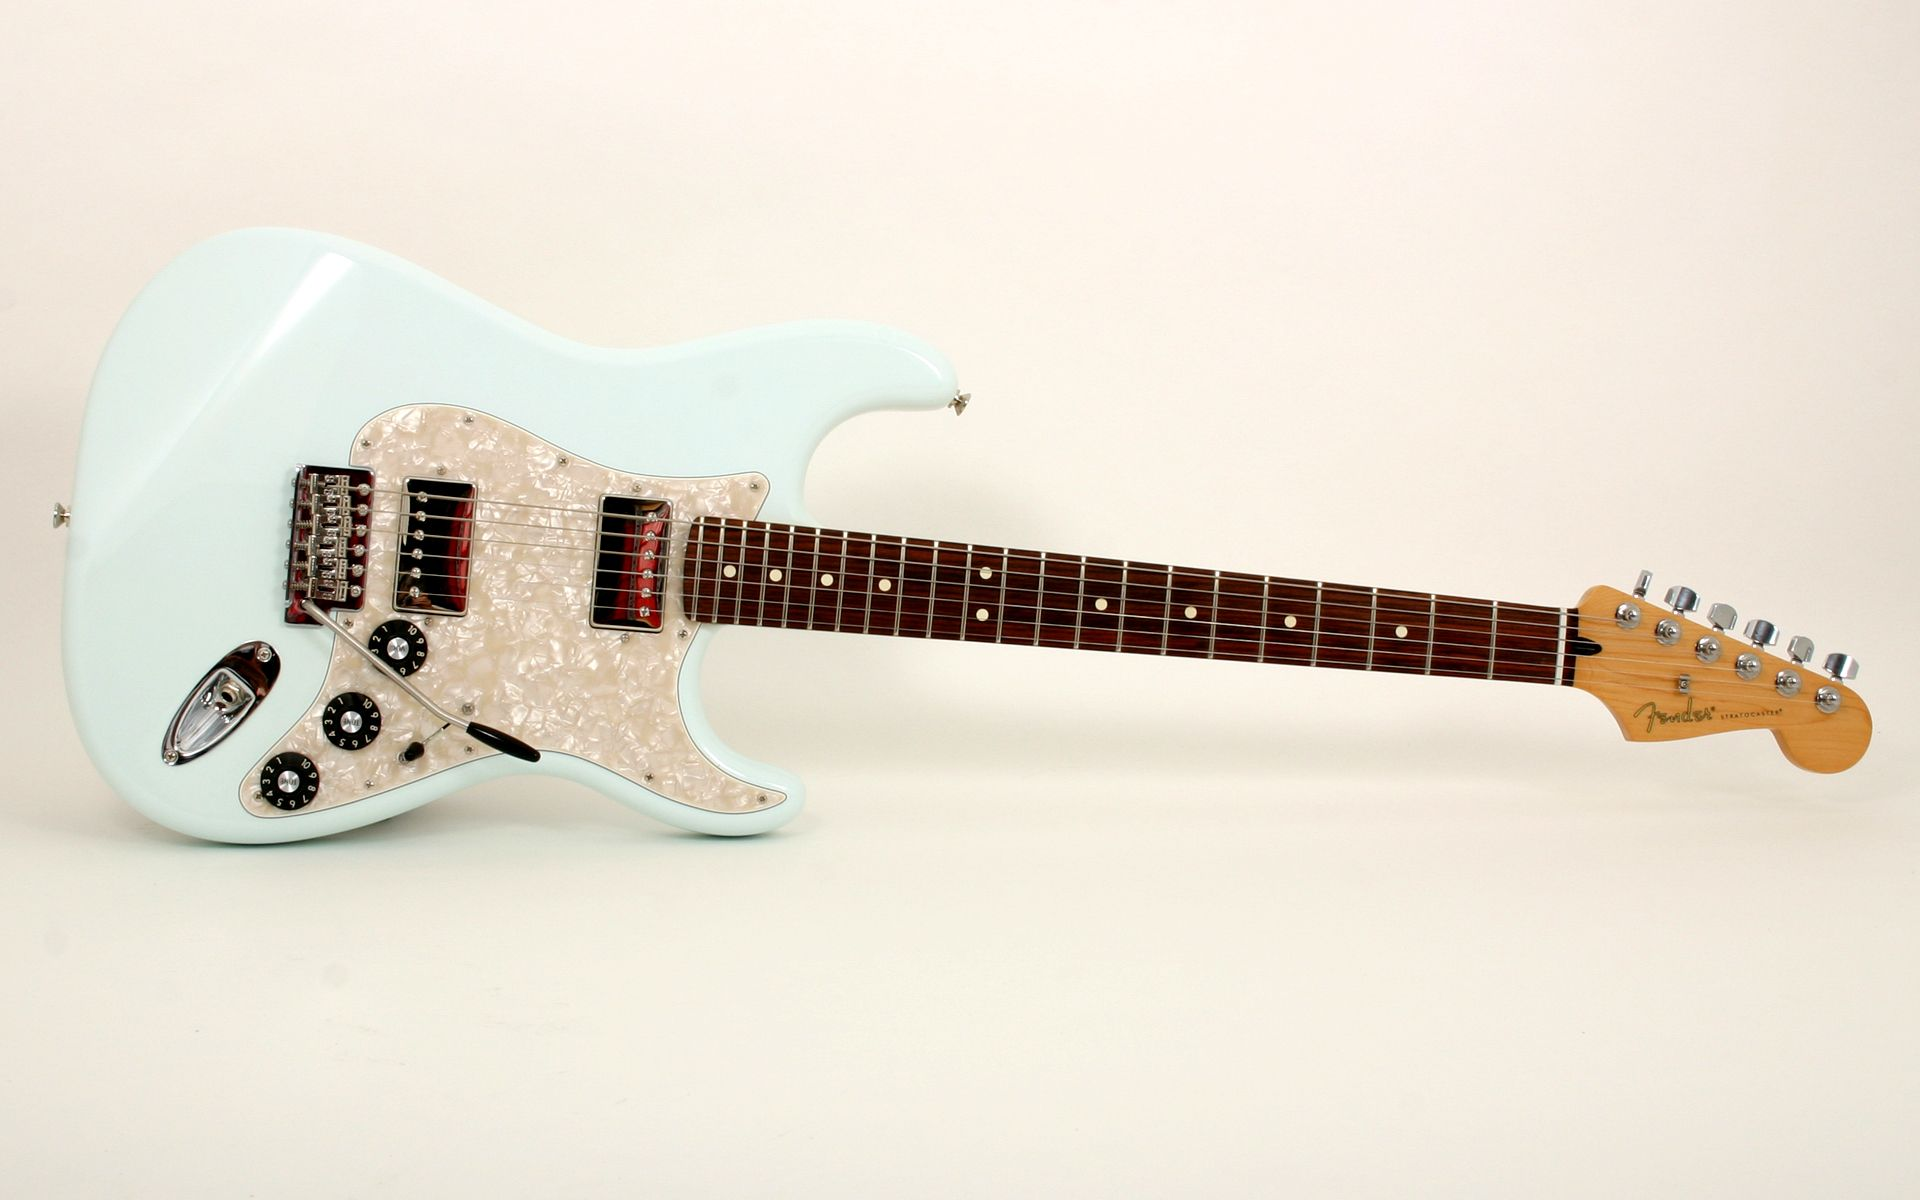 acme guitar works blacktop stratocaster hh rosewood fretboard sonic blue acme  [ 1920 x 1200 Pixel ]